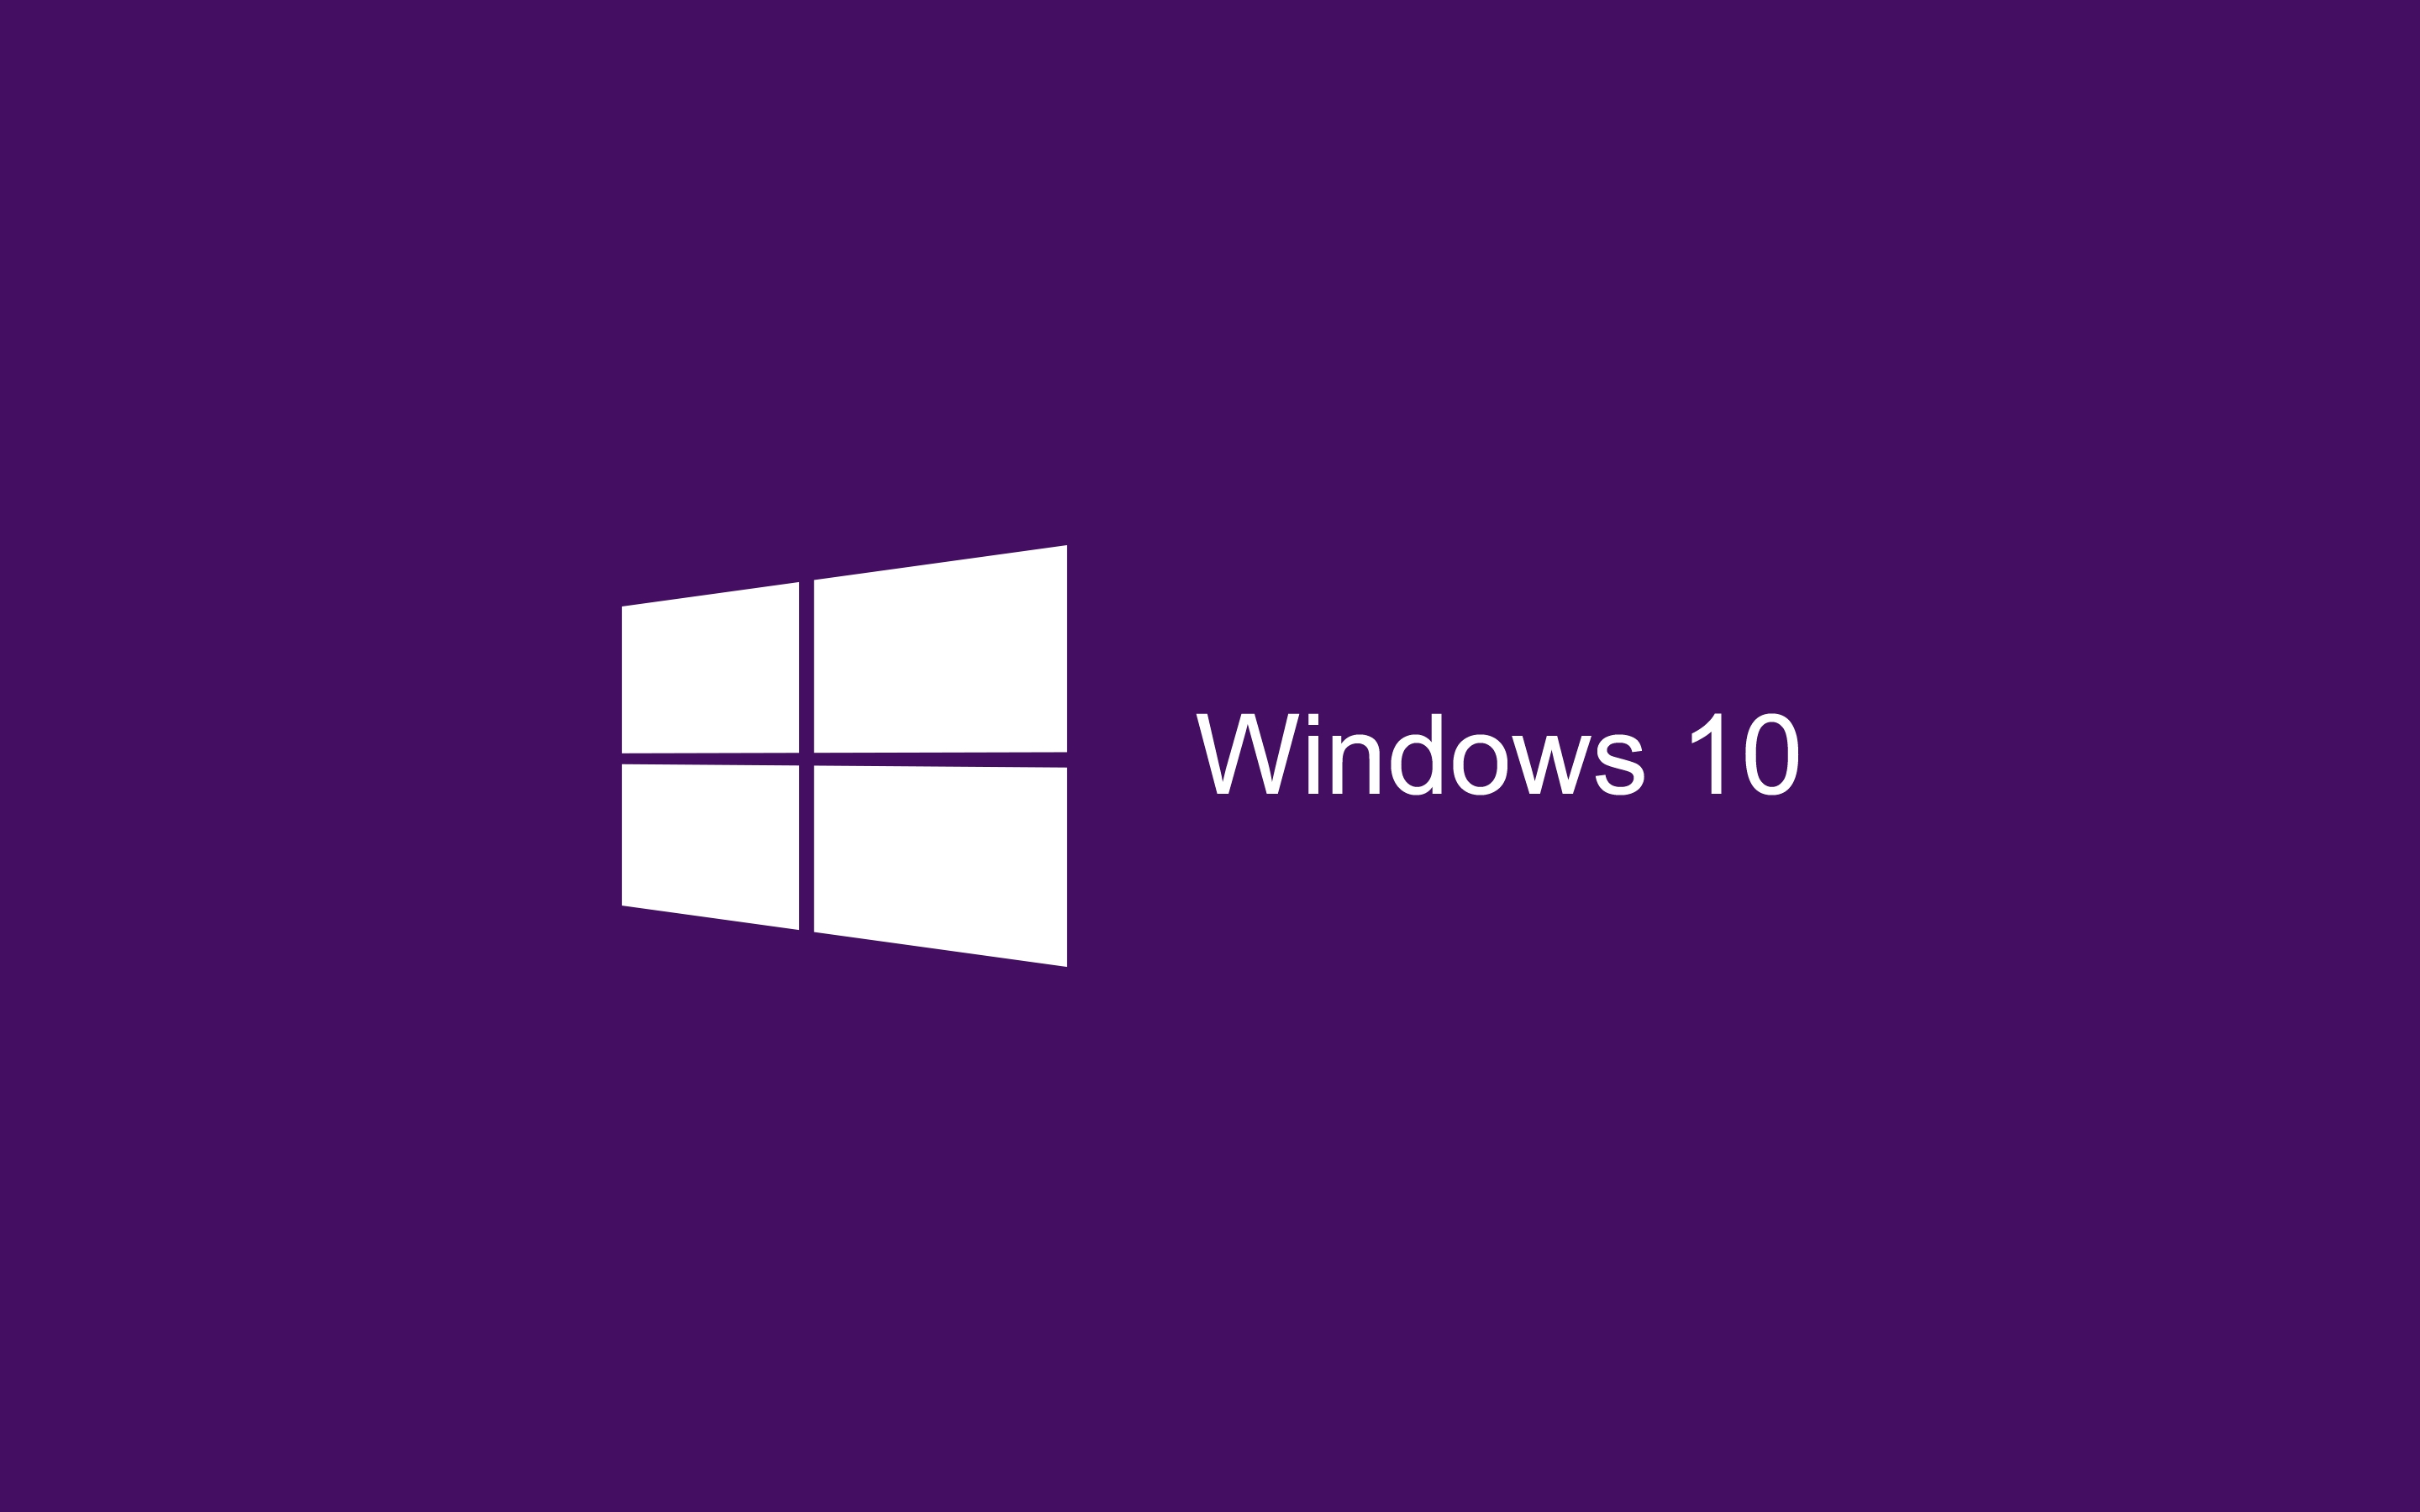 Windows 10 013 Purple, Logo, Logo